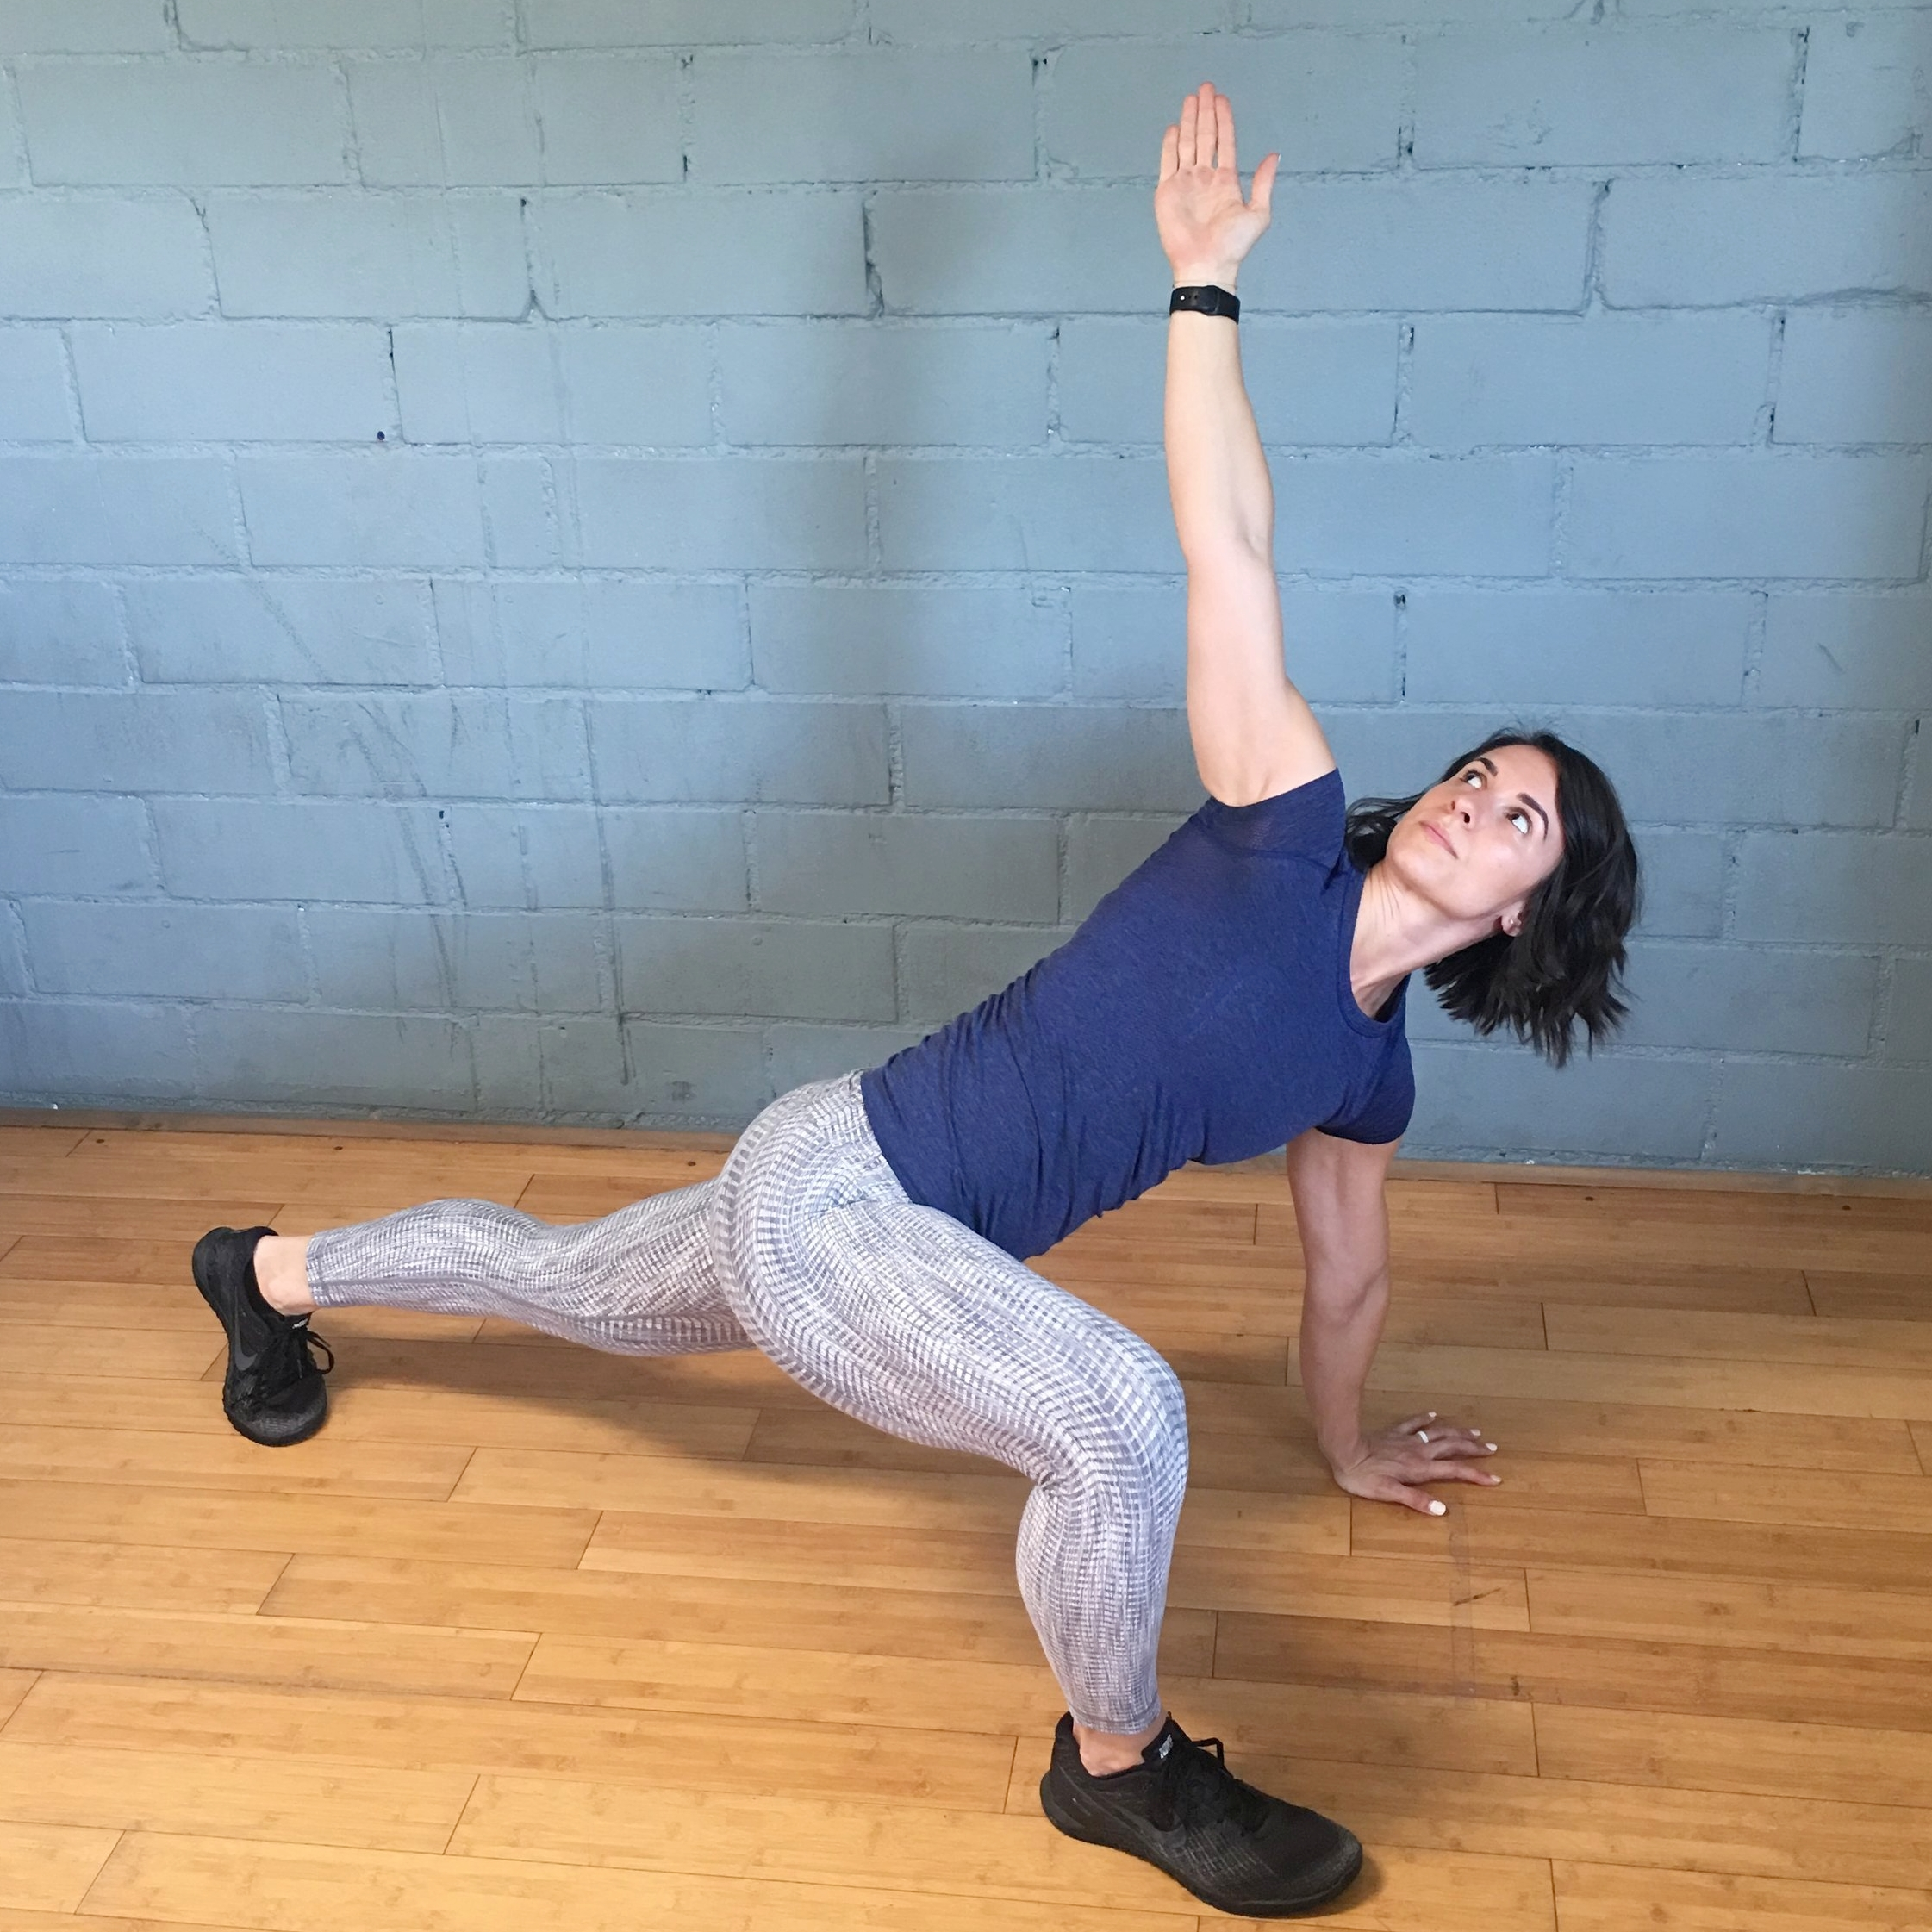 *Start in a deep lunge with your right foot forward & your left leg back with your knee straight. Bring your right elbow to touch your right foot (or as close as you can get!) & then twist your torso open with your right arm extended toward the sky. Complete 10 times & then switch legs & repeat.